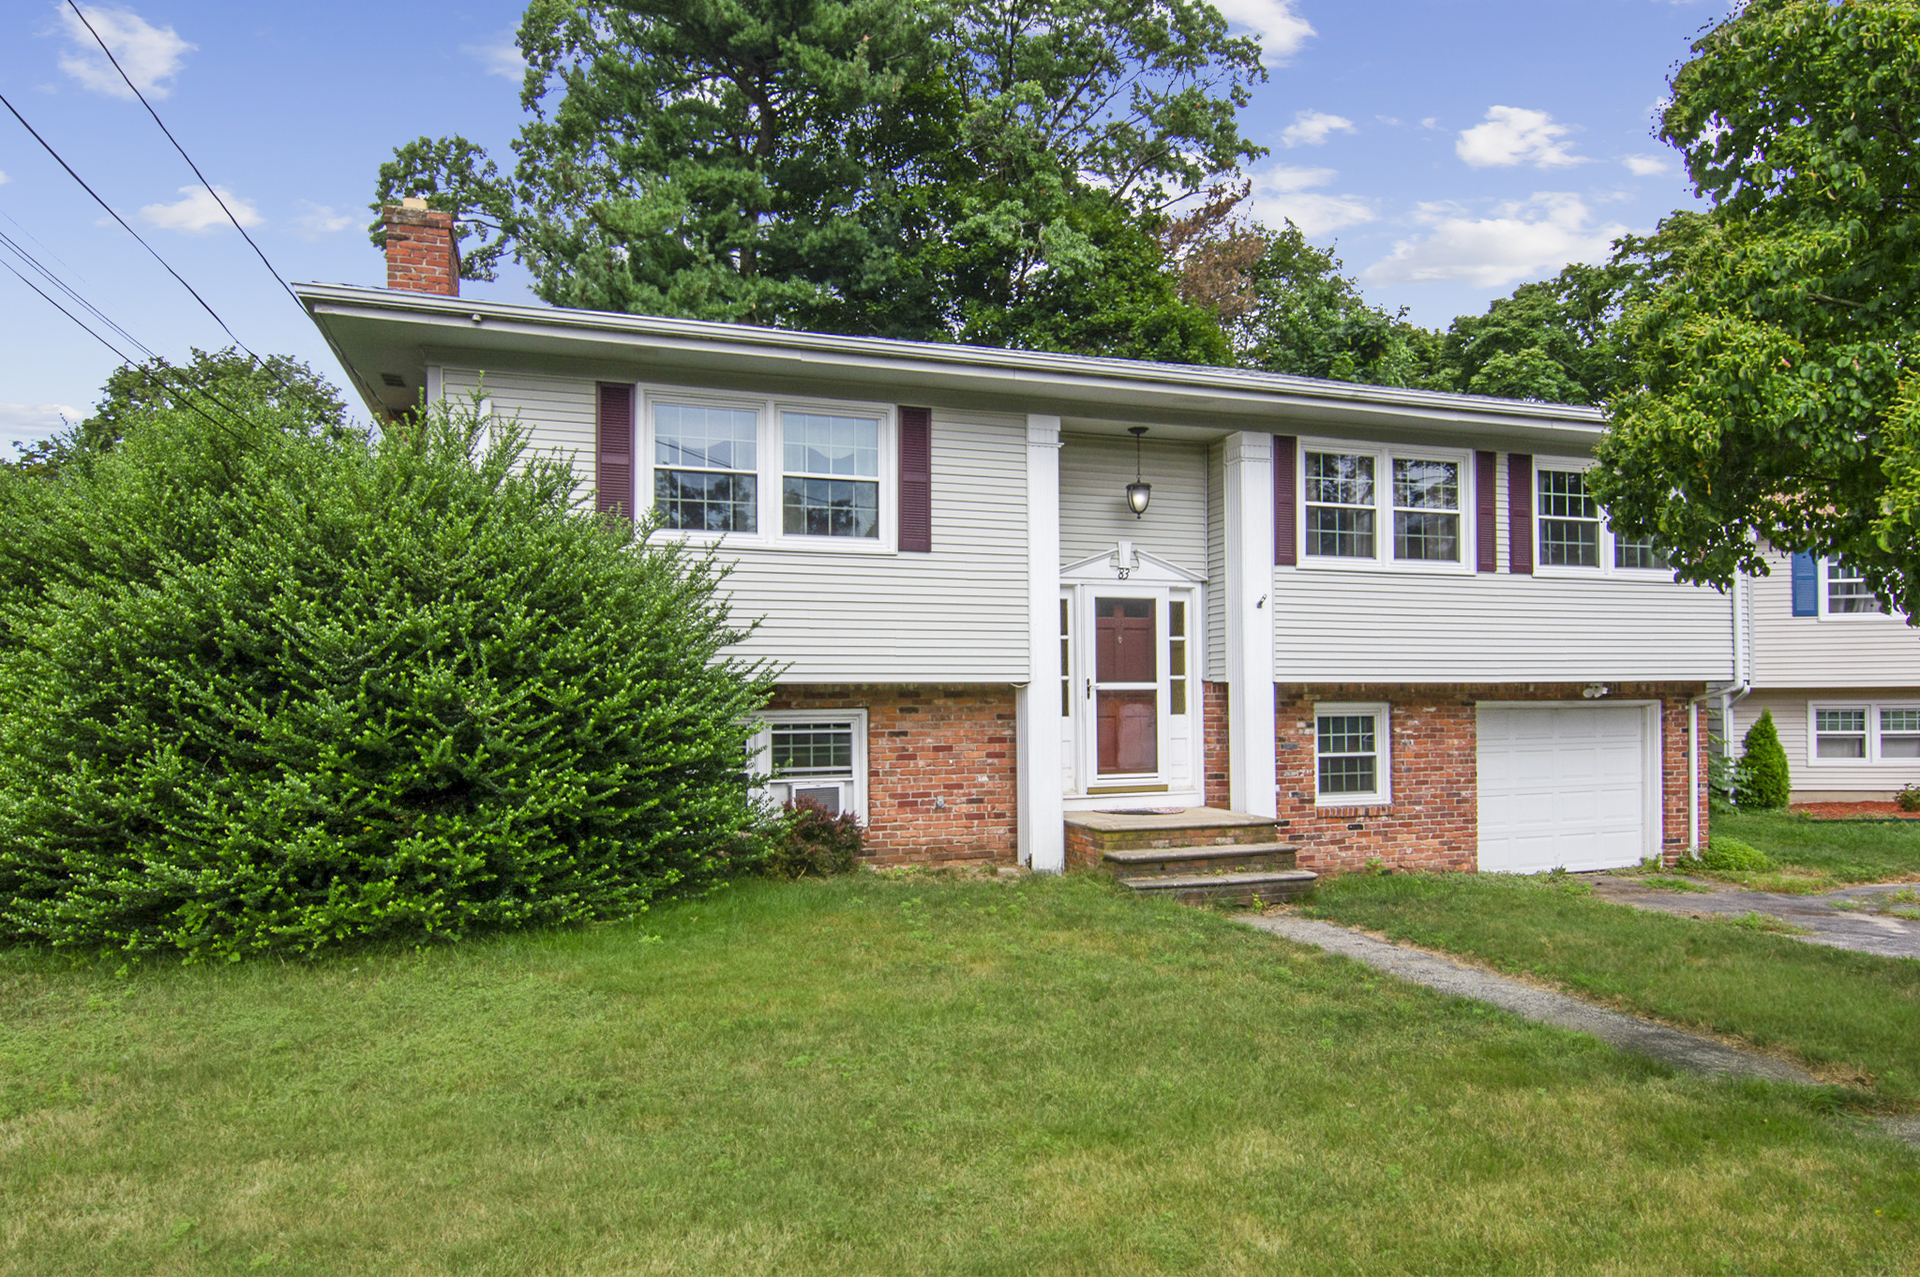 83 N Pearson Dr. Warwick, RI | Sunday 8/25 from 11am to 1pm